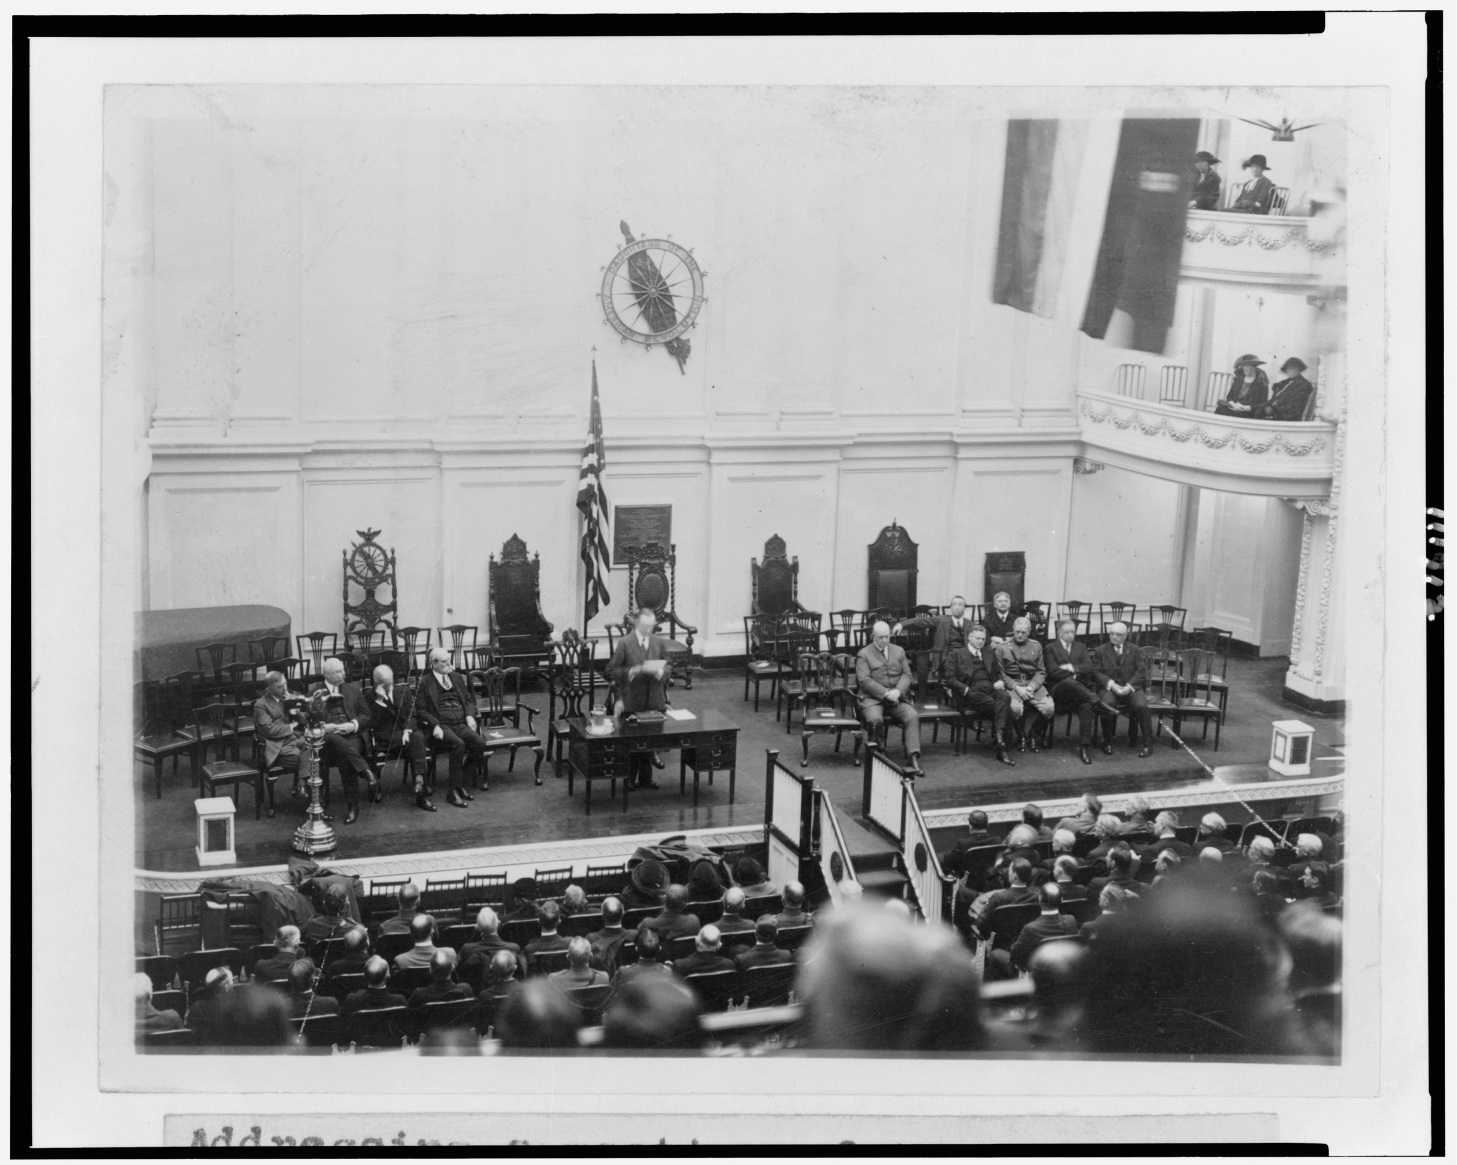 Vice President Coolidge directing the Budget meeting in Harding's absence, 1923.